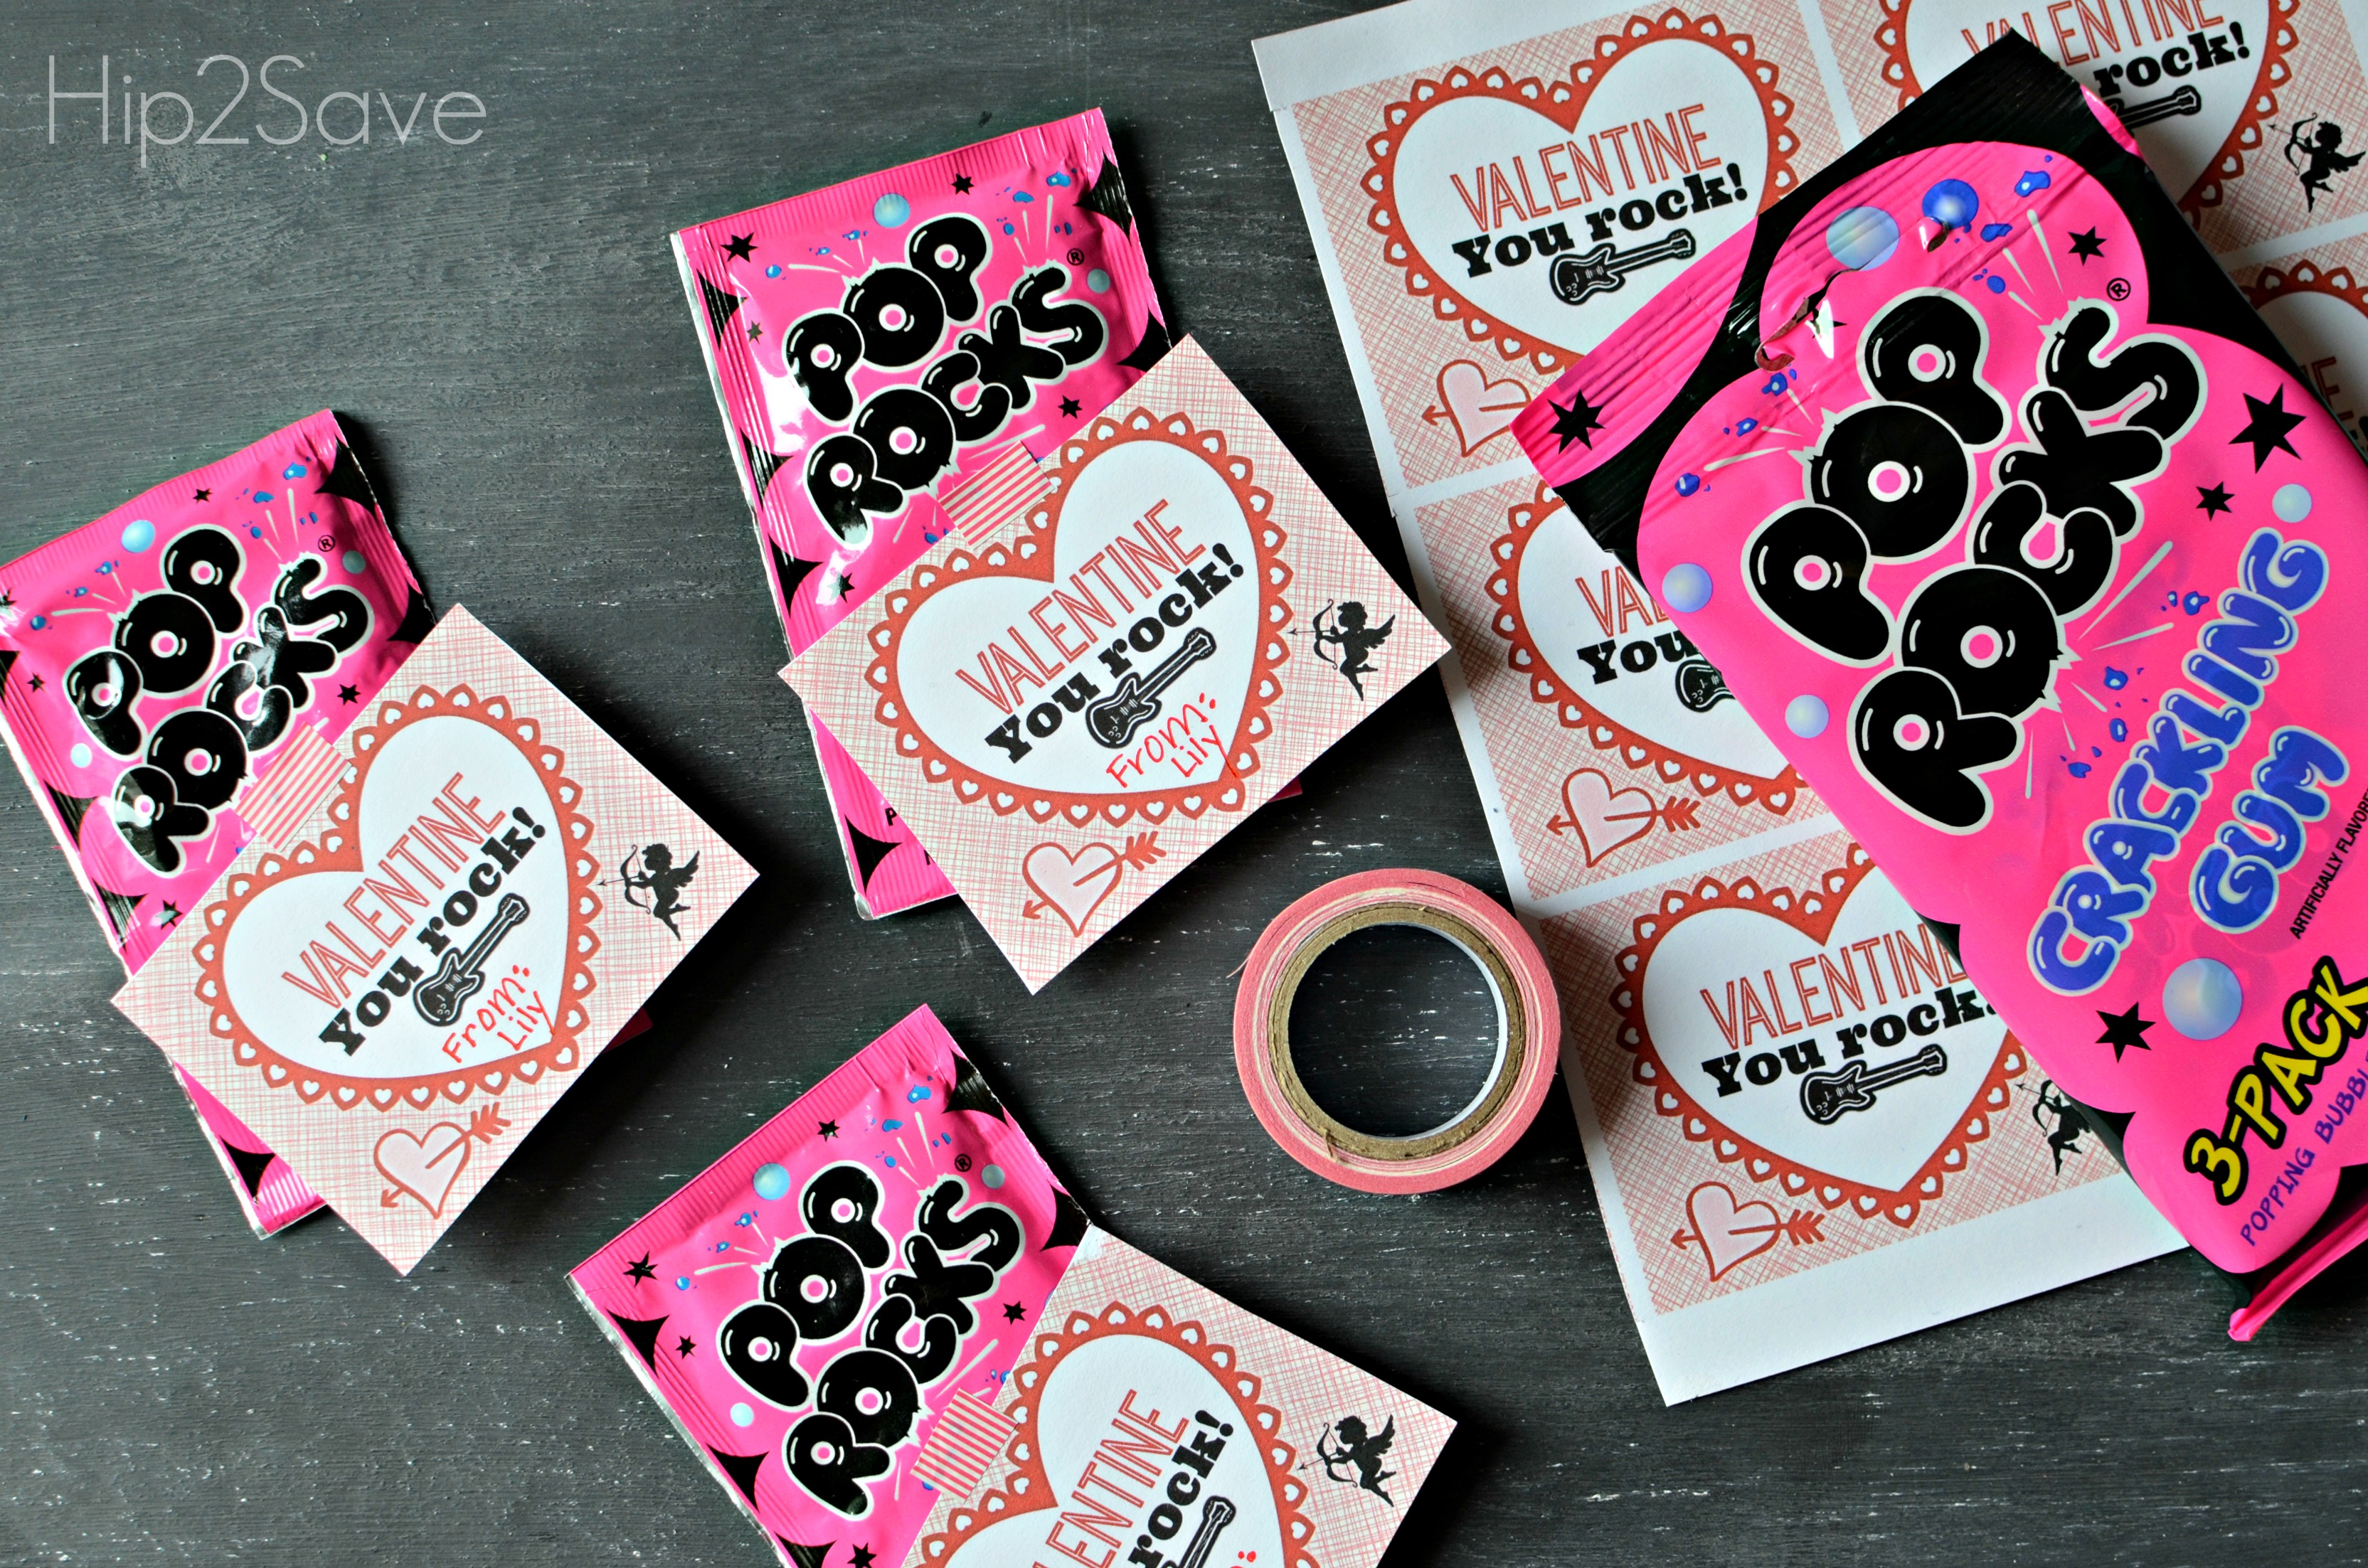 photograph relating to Pop Rocks Valentines Printable identified as Pop Rocks Valentines Working day Playing cards (+ Absolutely free Printables) - Simple